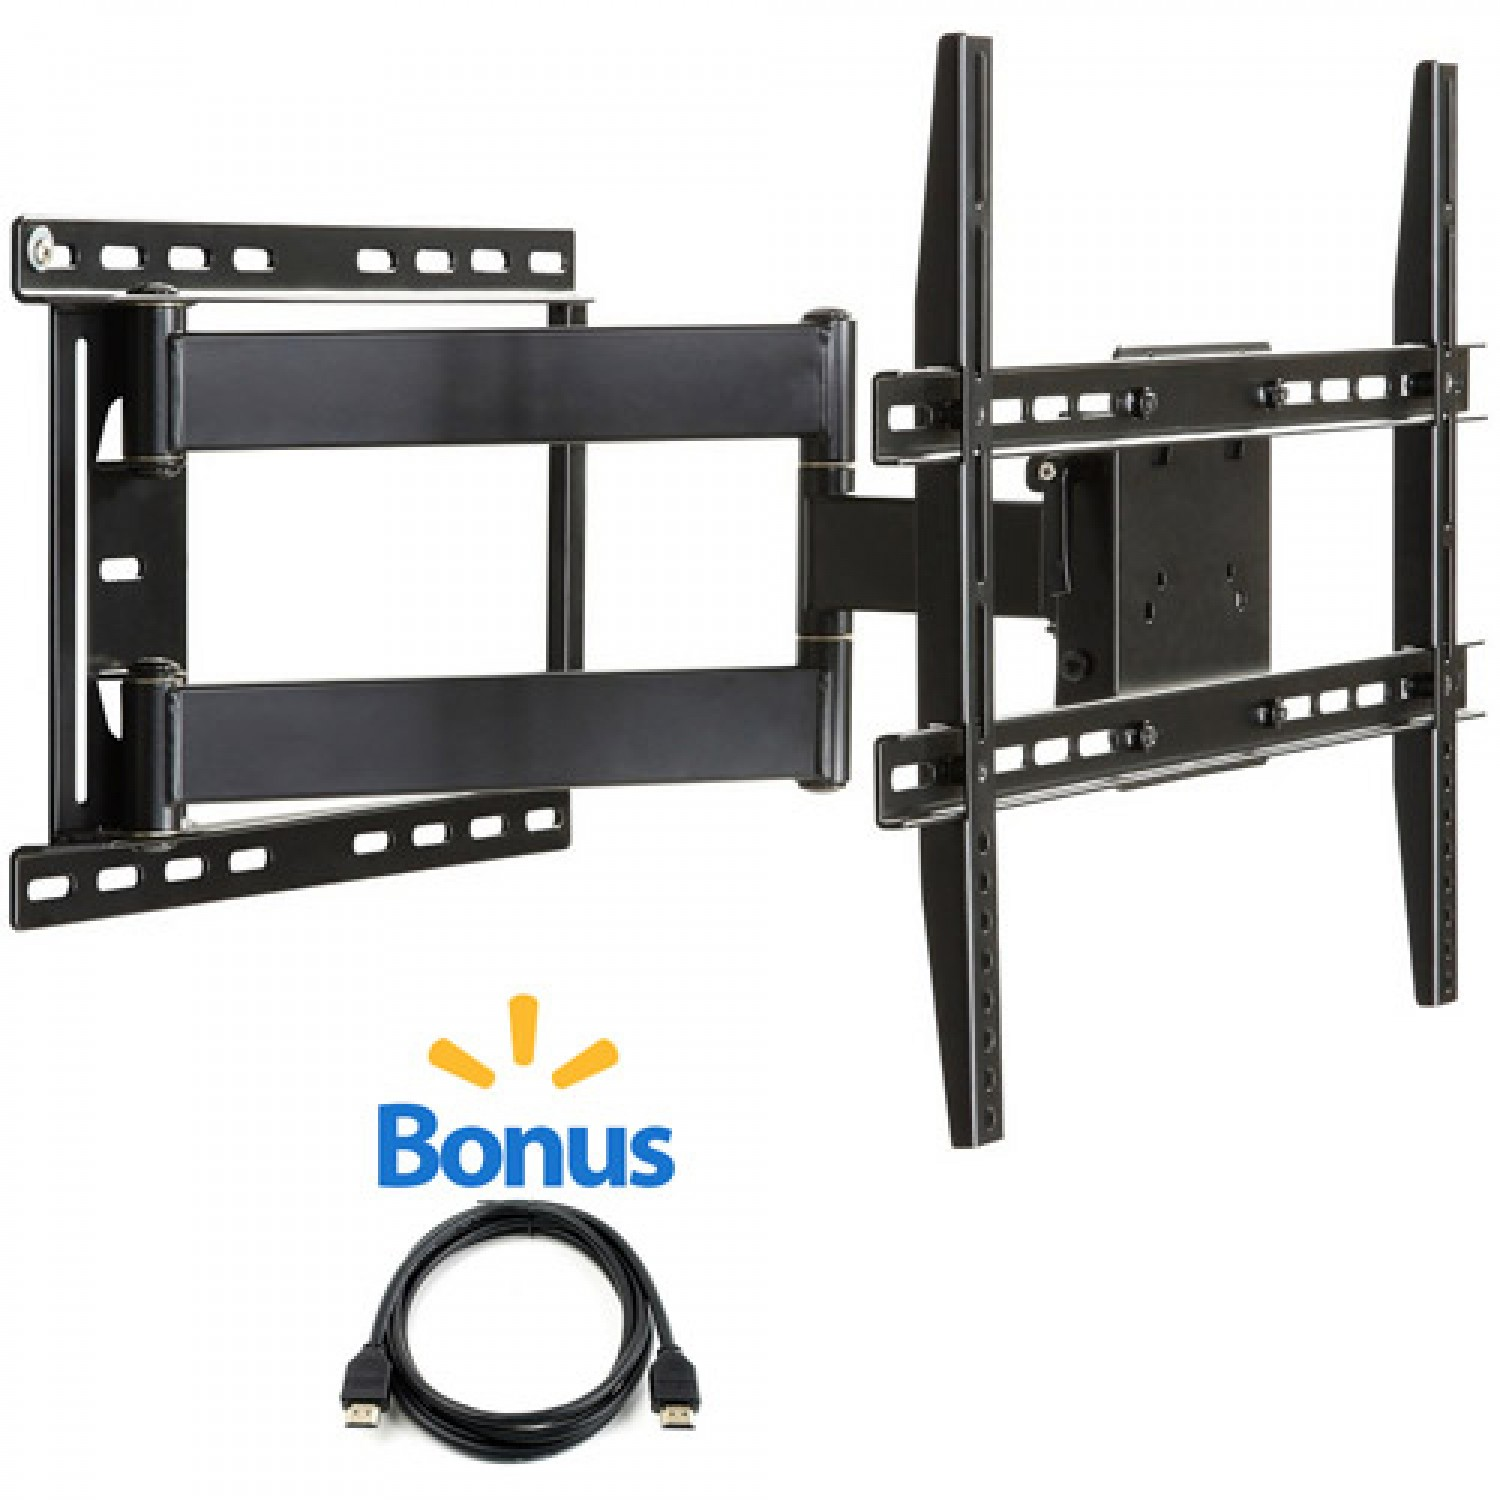 Get Savings of $79 on Full Motion TV Wall Mount